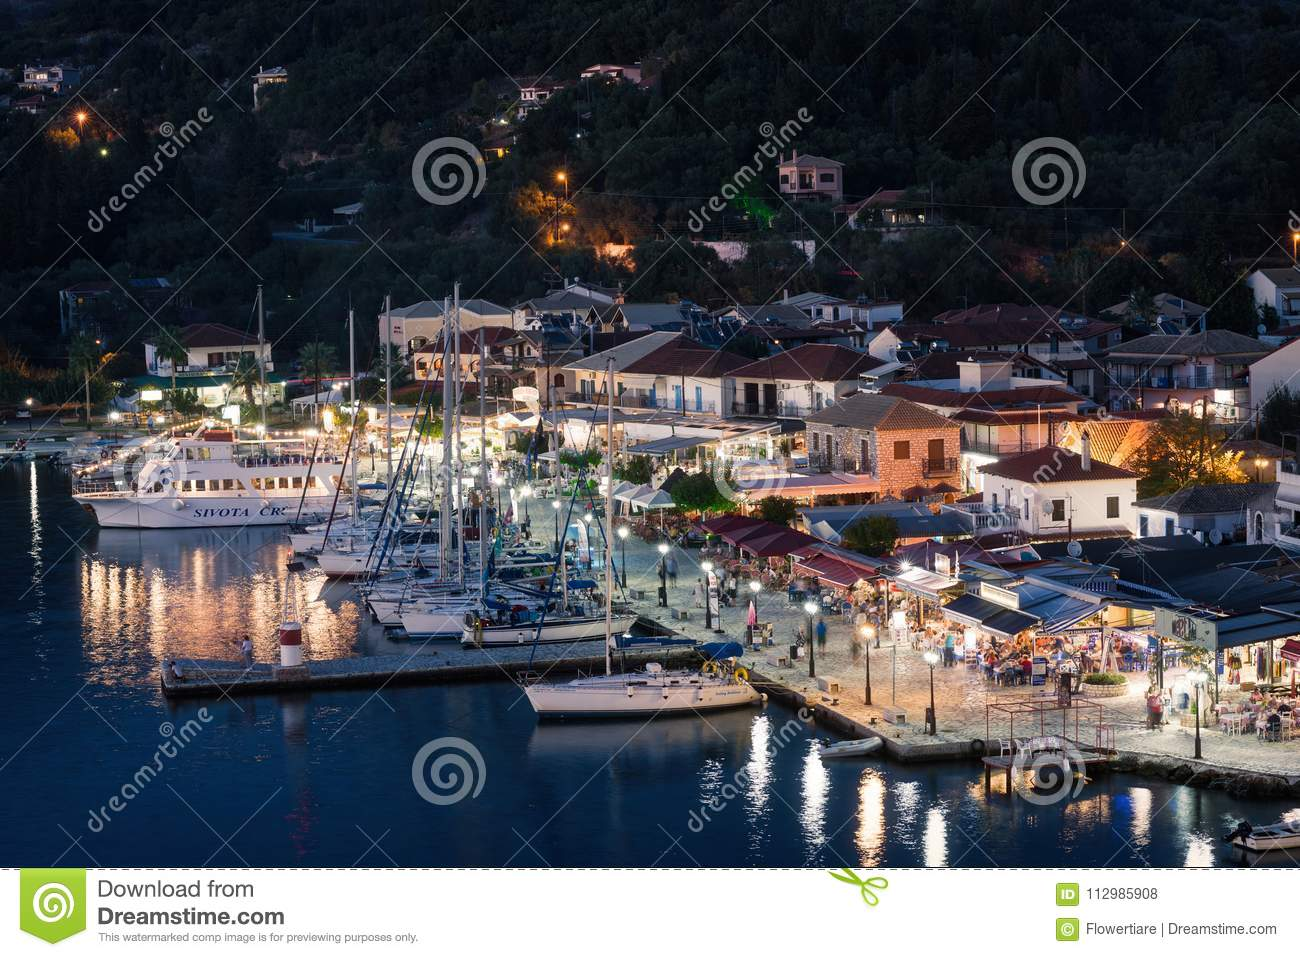 Sivota, Greece, 09 September, 2017 Panorama of the center of the town of Sivota in the Greece.